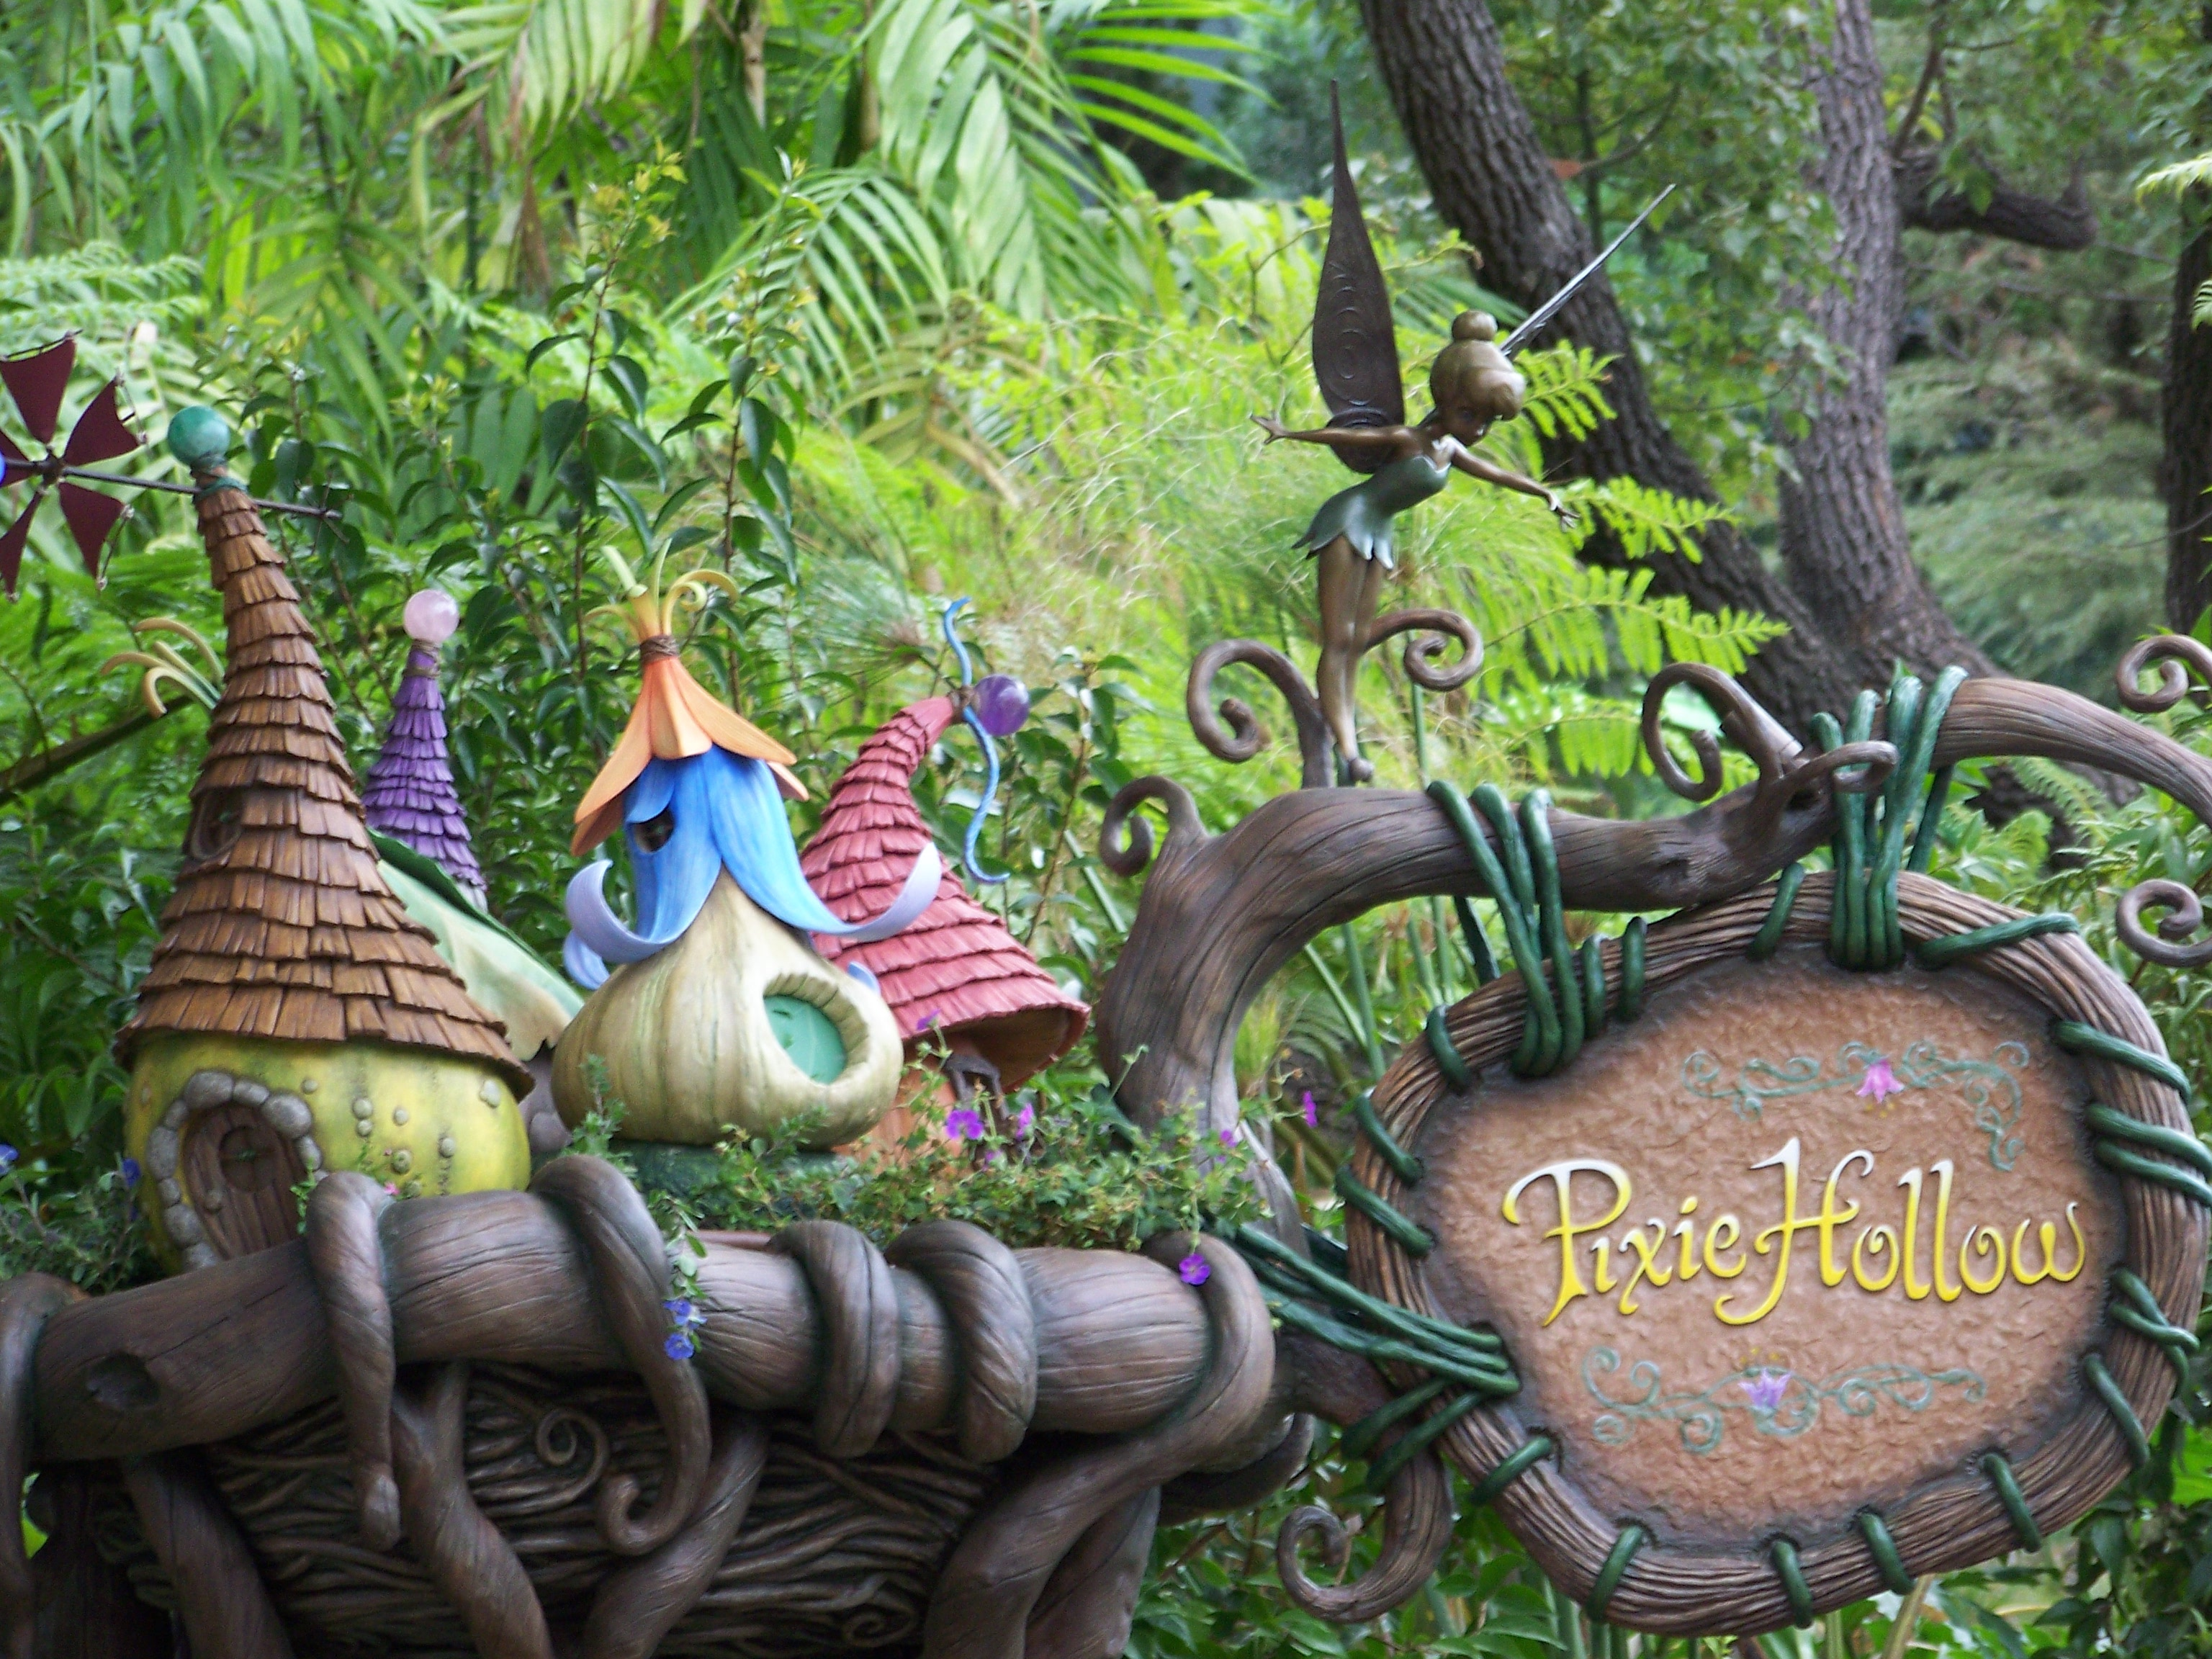 Pixie Hollow Fairy Garden EPCOT Disney World FL